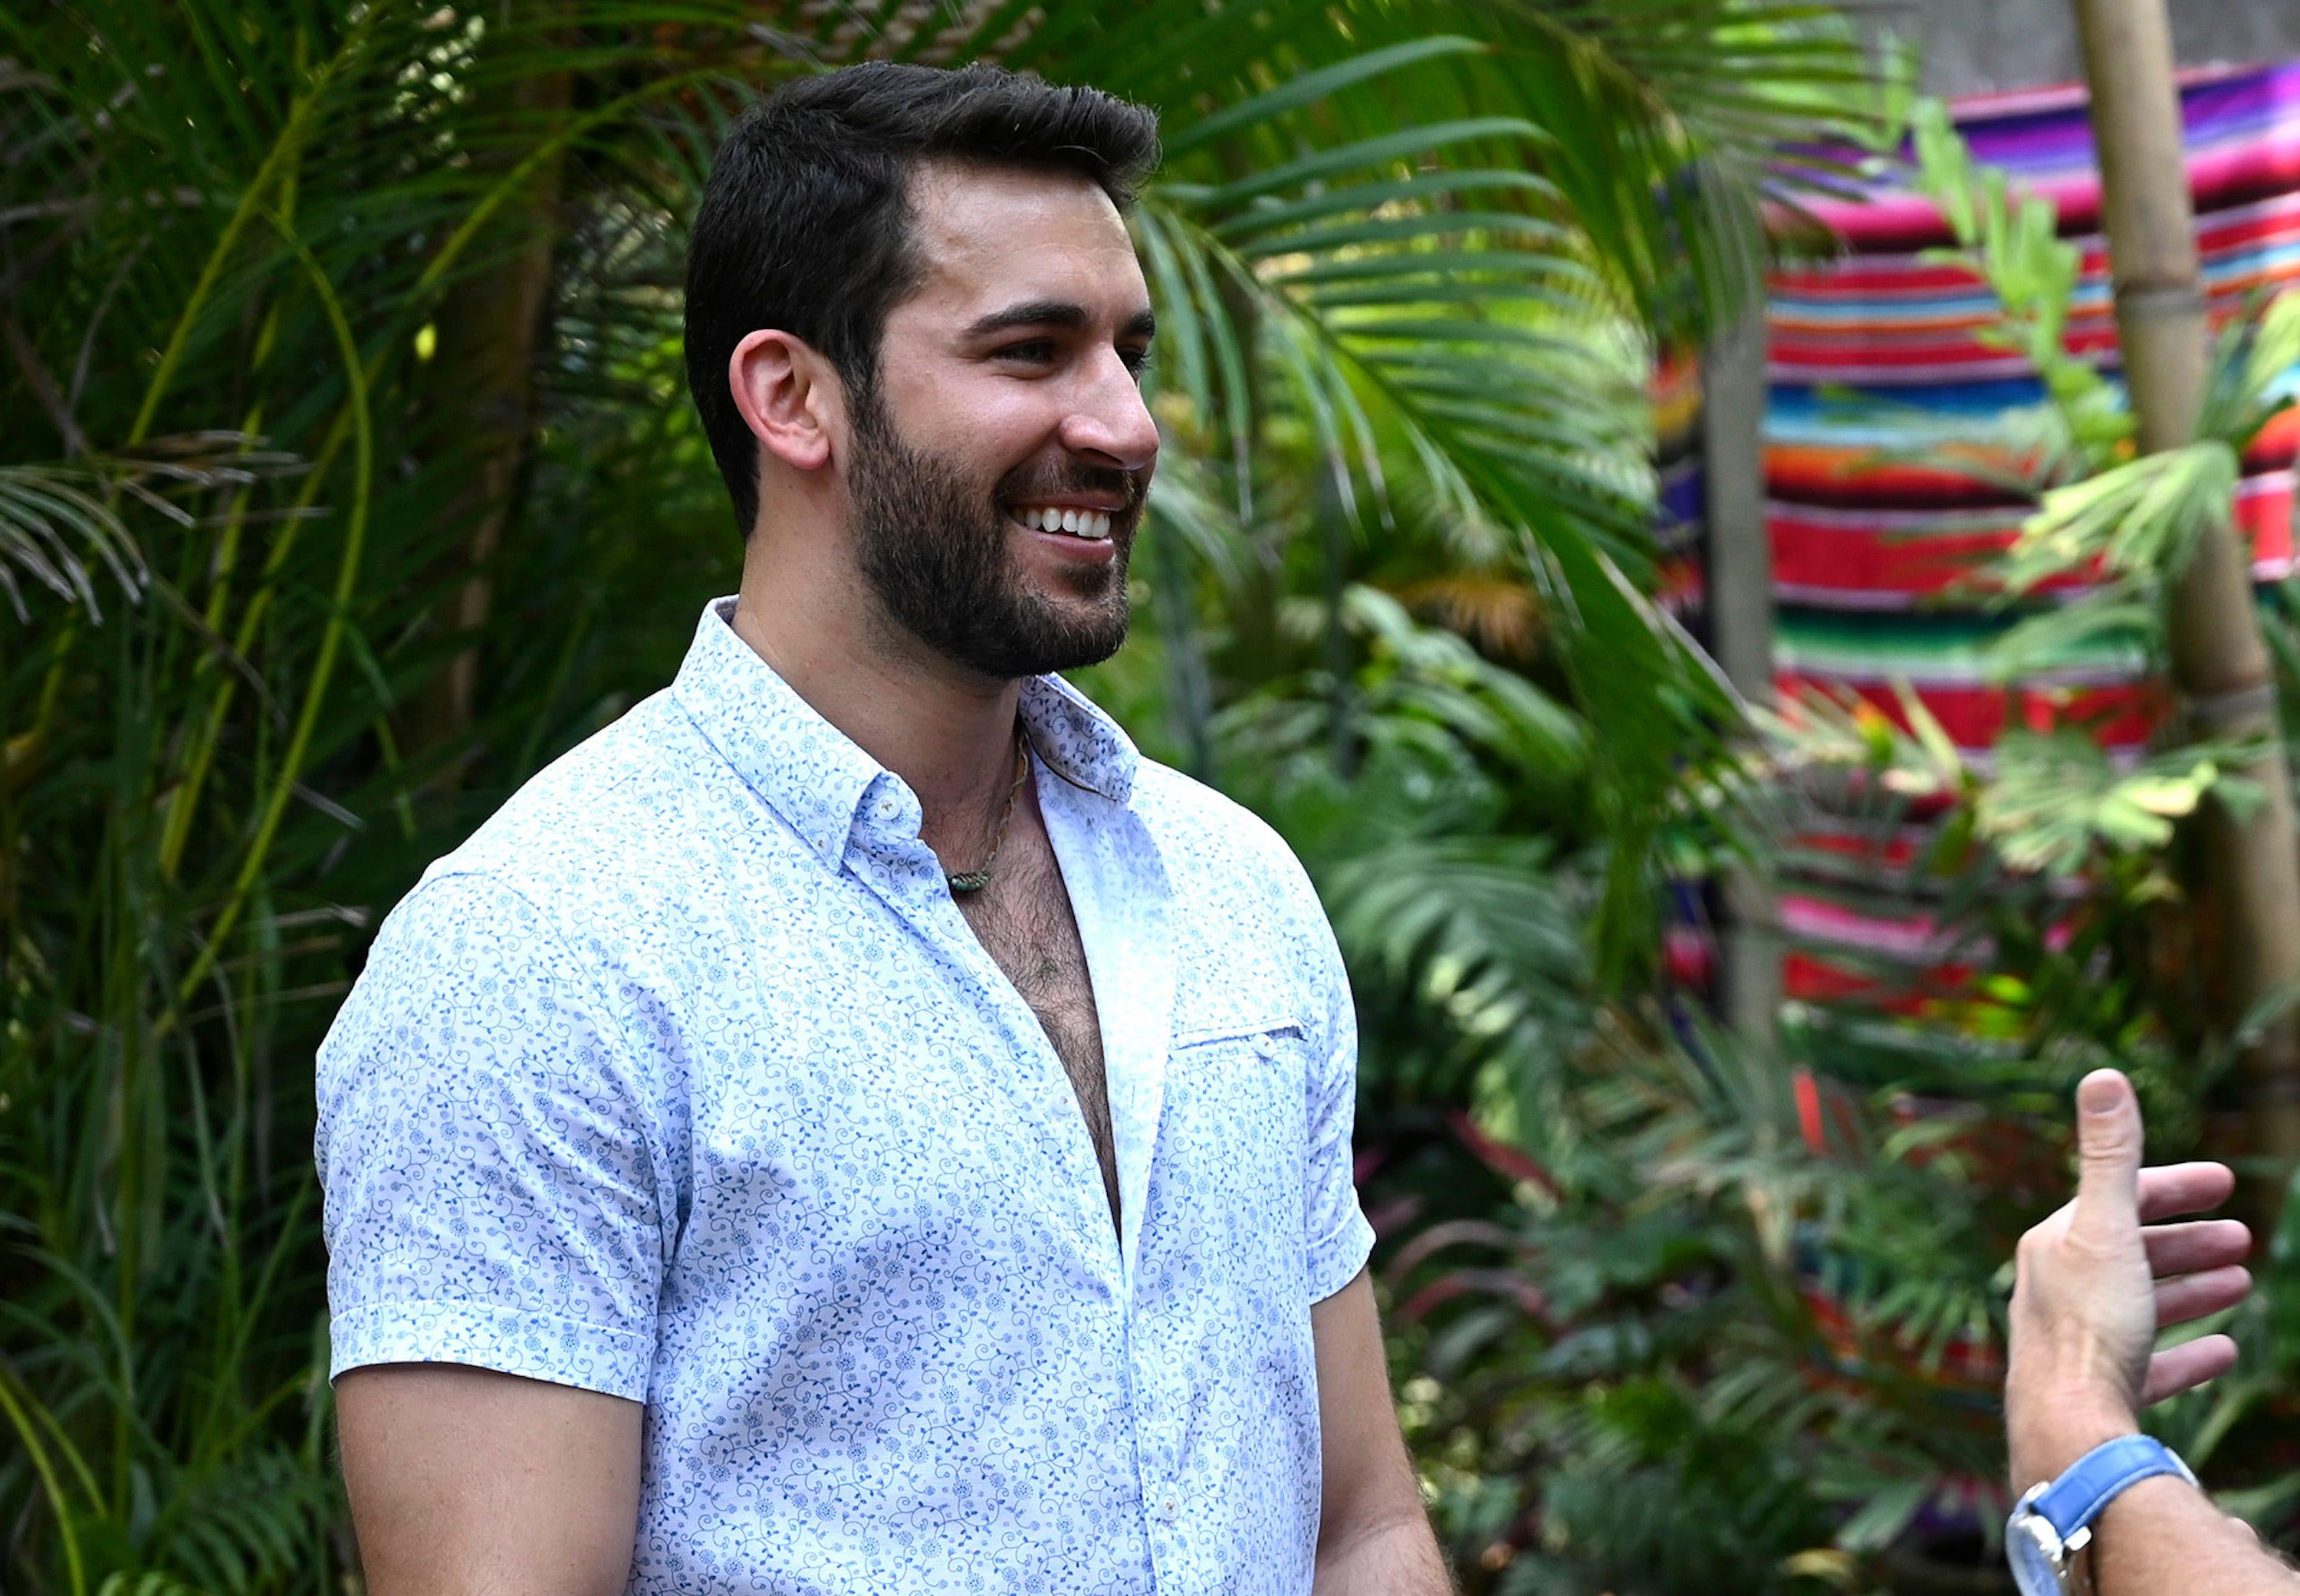 Some BIP Fans Are Jumping The Mike-Johnson-For-Bachelor Ship For Derek Peth